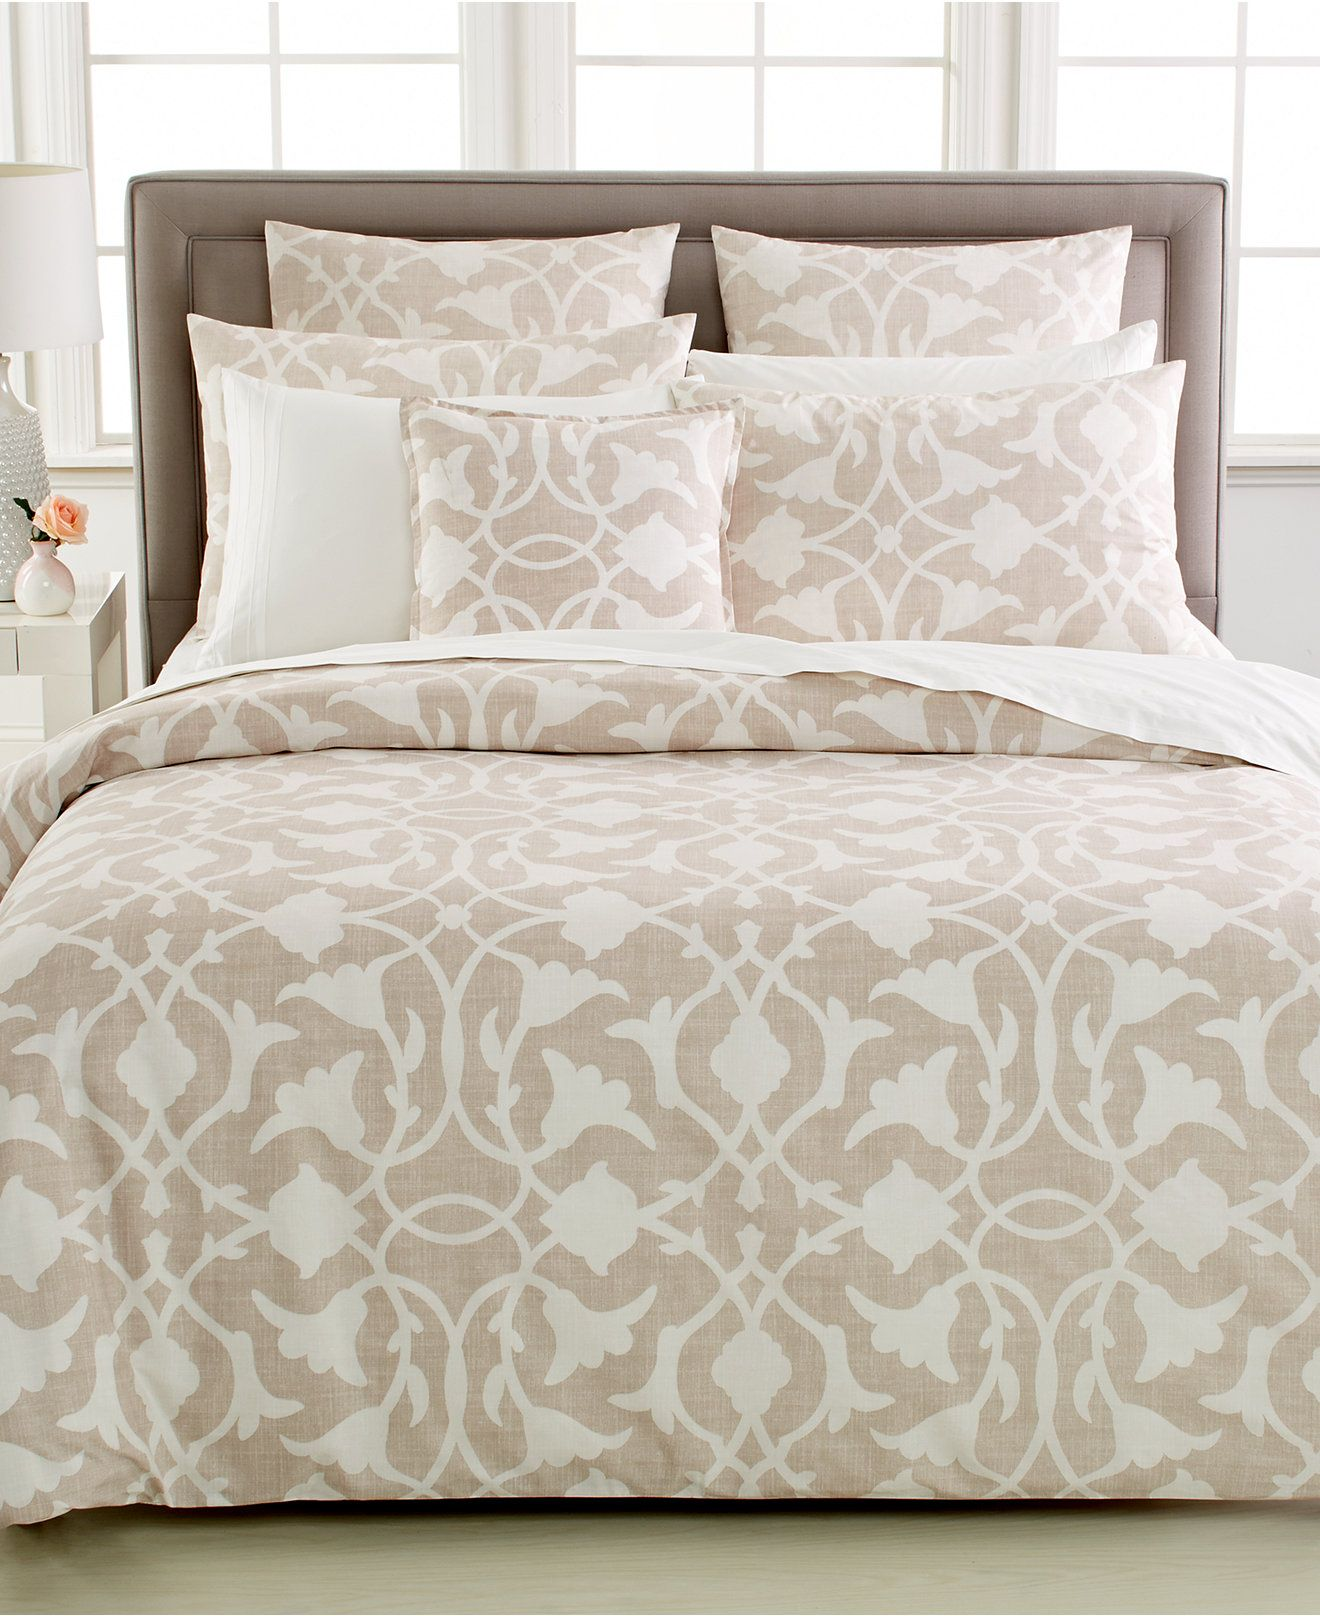 bedding home barry c bed antique collections zi dillards clearance gold sale barbara